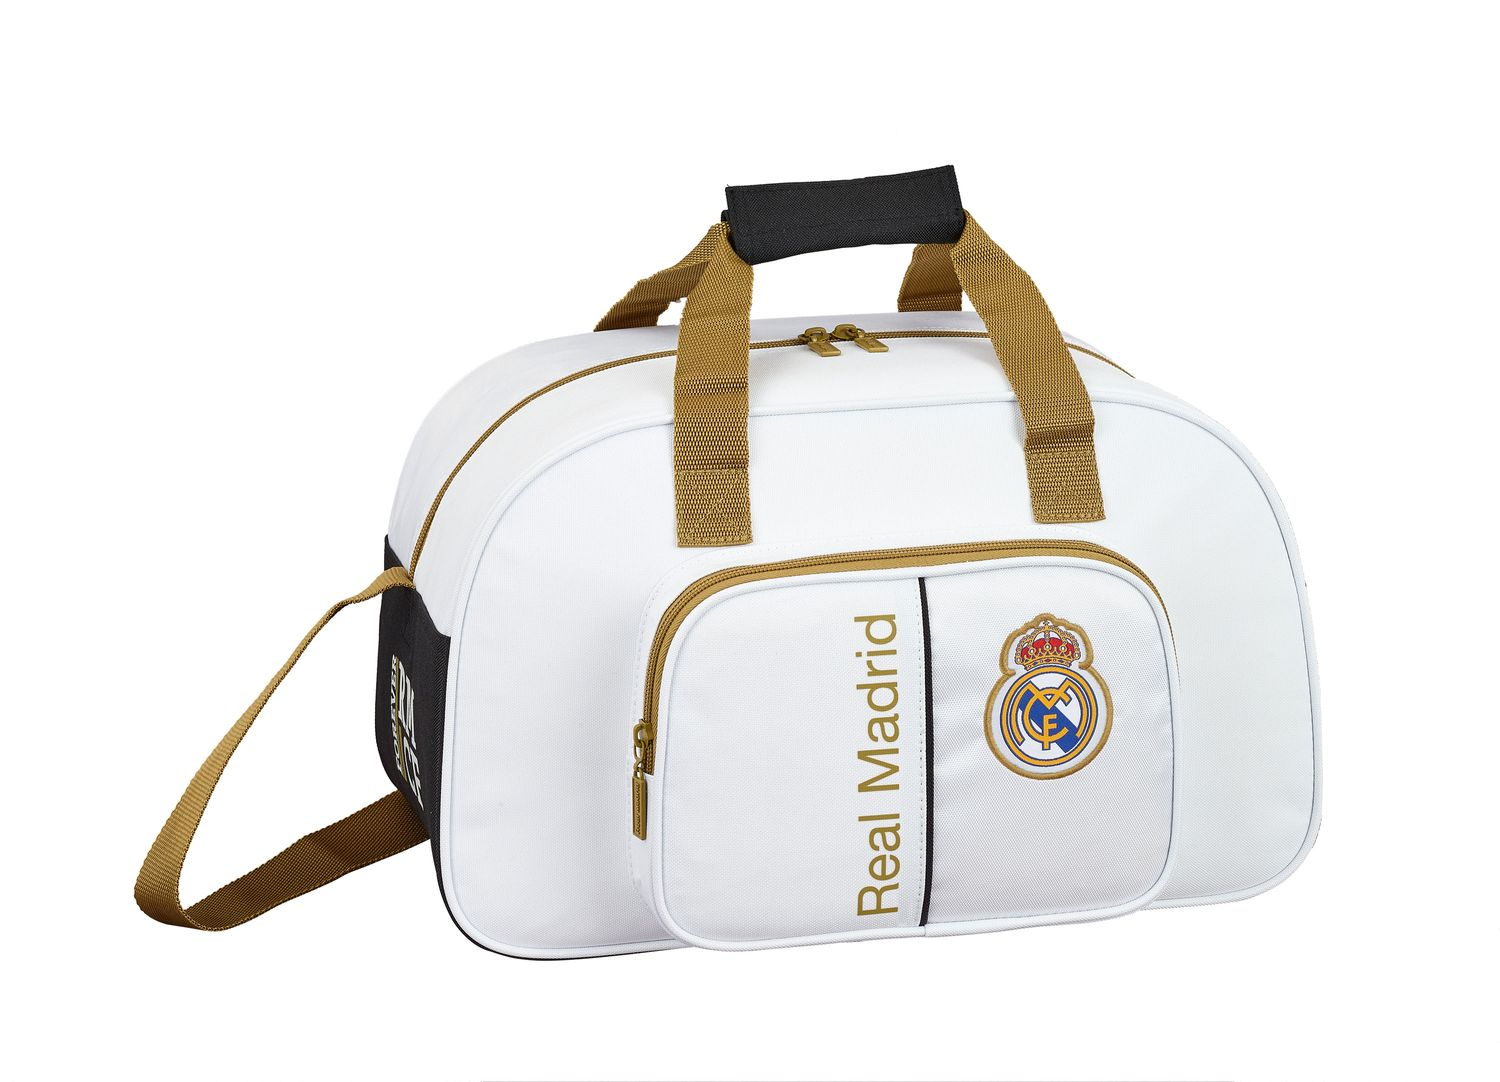 REAL MADRID 1st KIT 2020 Sports Holdall Bag 40cm – image 1